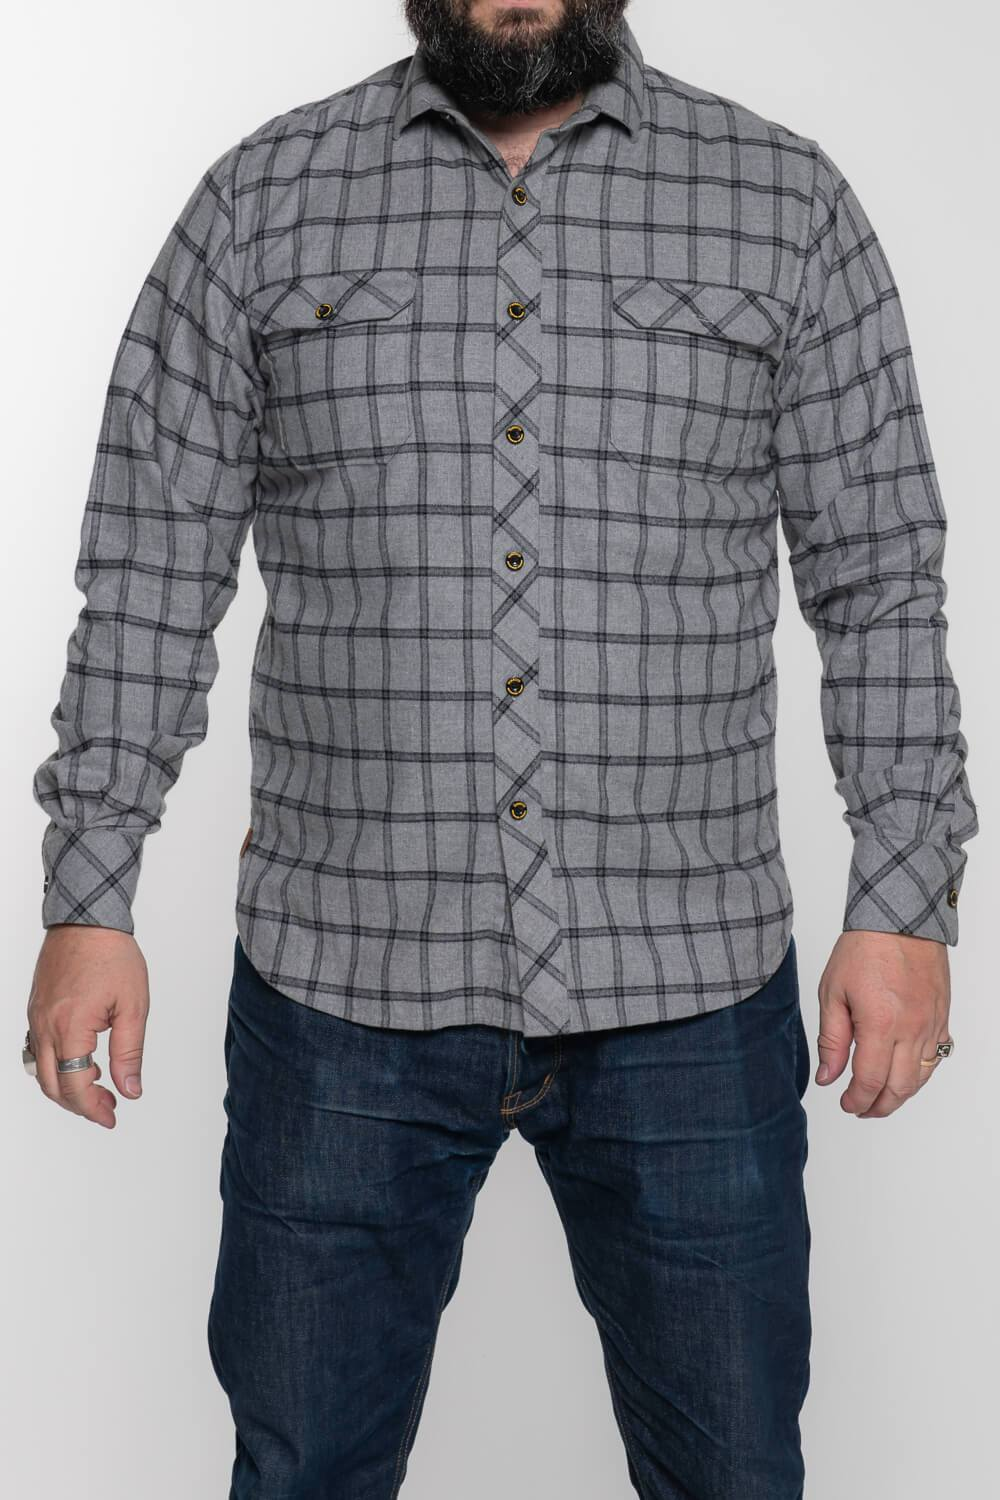 Tobacco Flannel - Grey